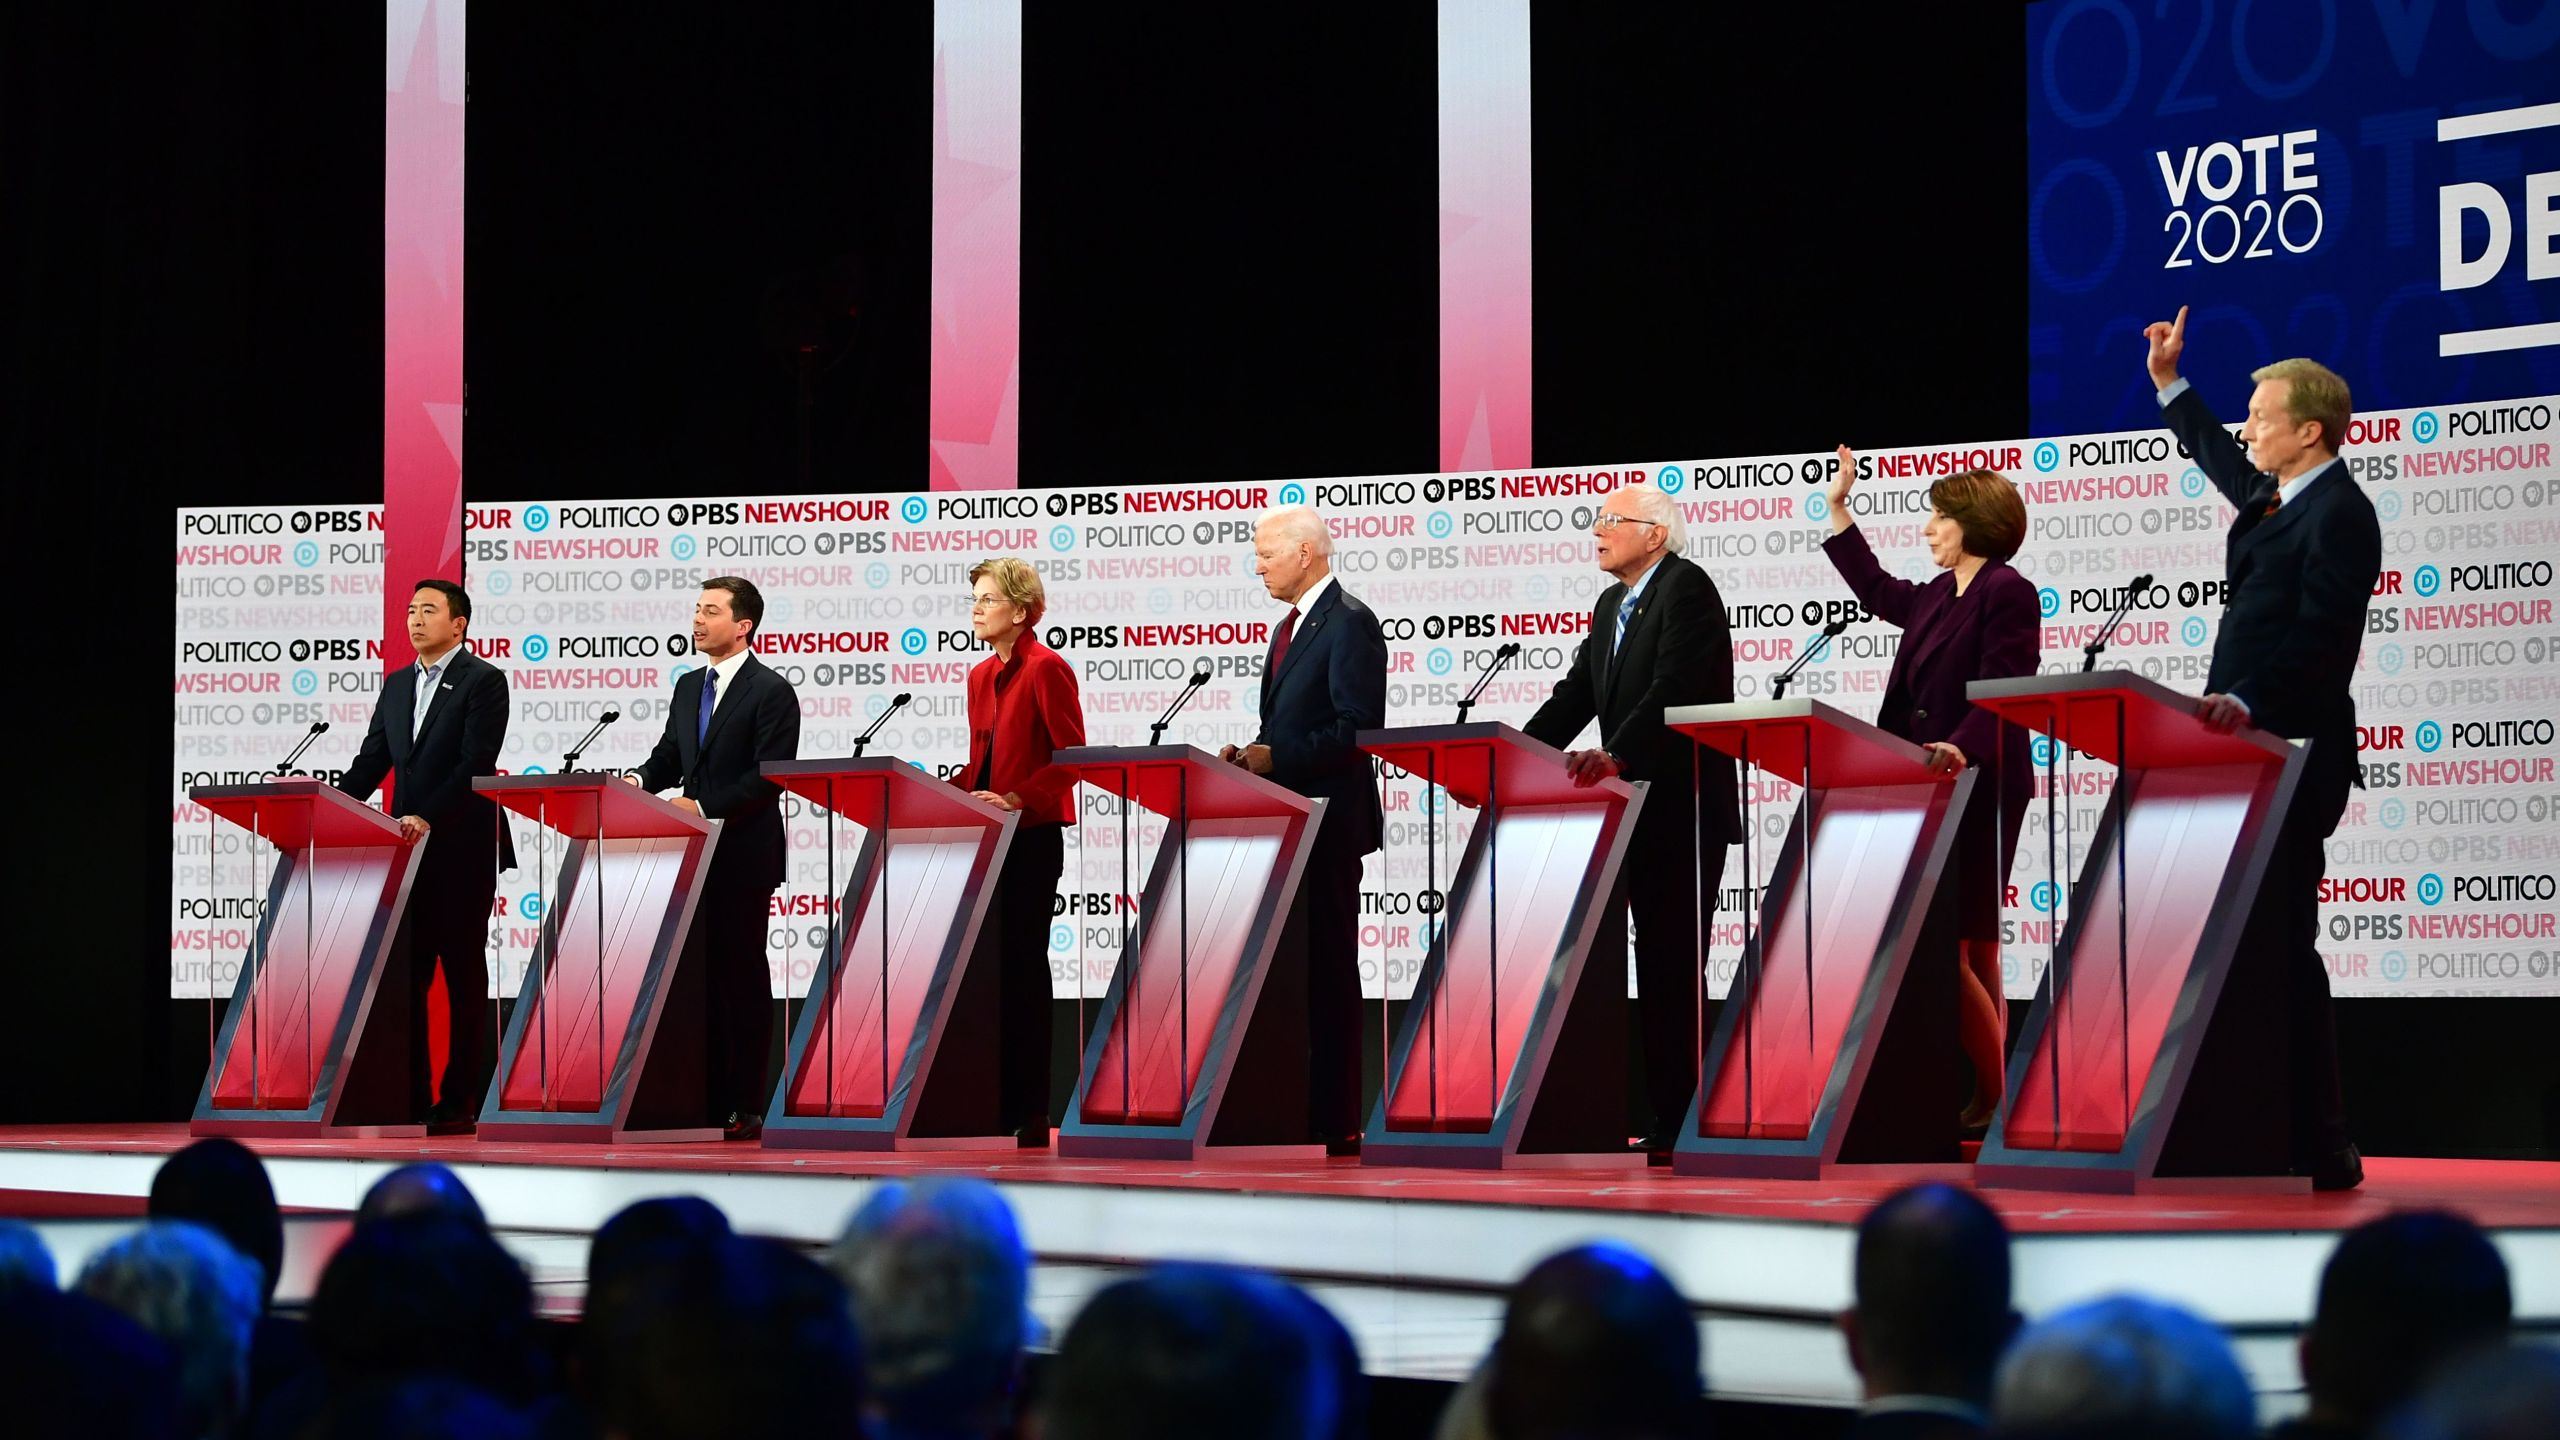 From left, Democratic presidential hopefuls entrepreneur Andrew Yang, South Bend Mayor Pete Buttigieg, Massachusetts Sen. Elizabeth Warren, former Vice President Joe Biden, Vermont Sen. Bernie Sanders, Minnesota Sen. Amy Klobuchar and businessman Tom Steyer participate at the sixth Democratic primary debate at Loyola Marymount University on Dec. 19, 2019. (Credit: Frederic J. Brown / AFP / Getty Images)